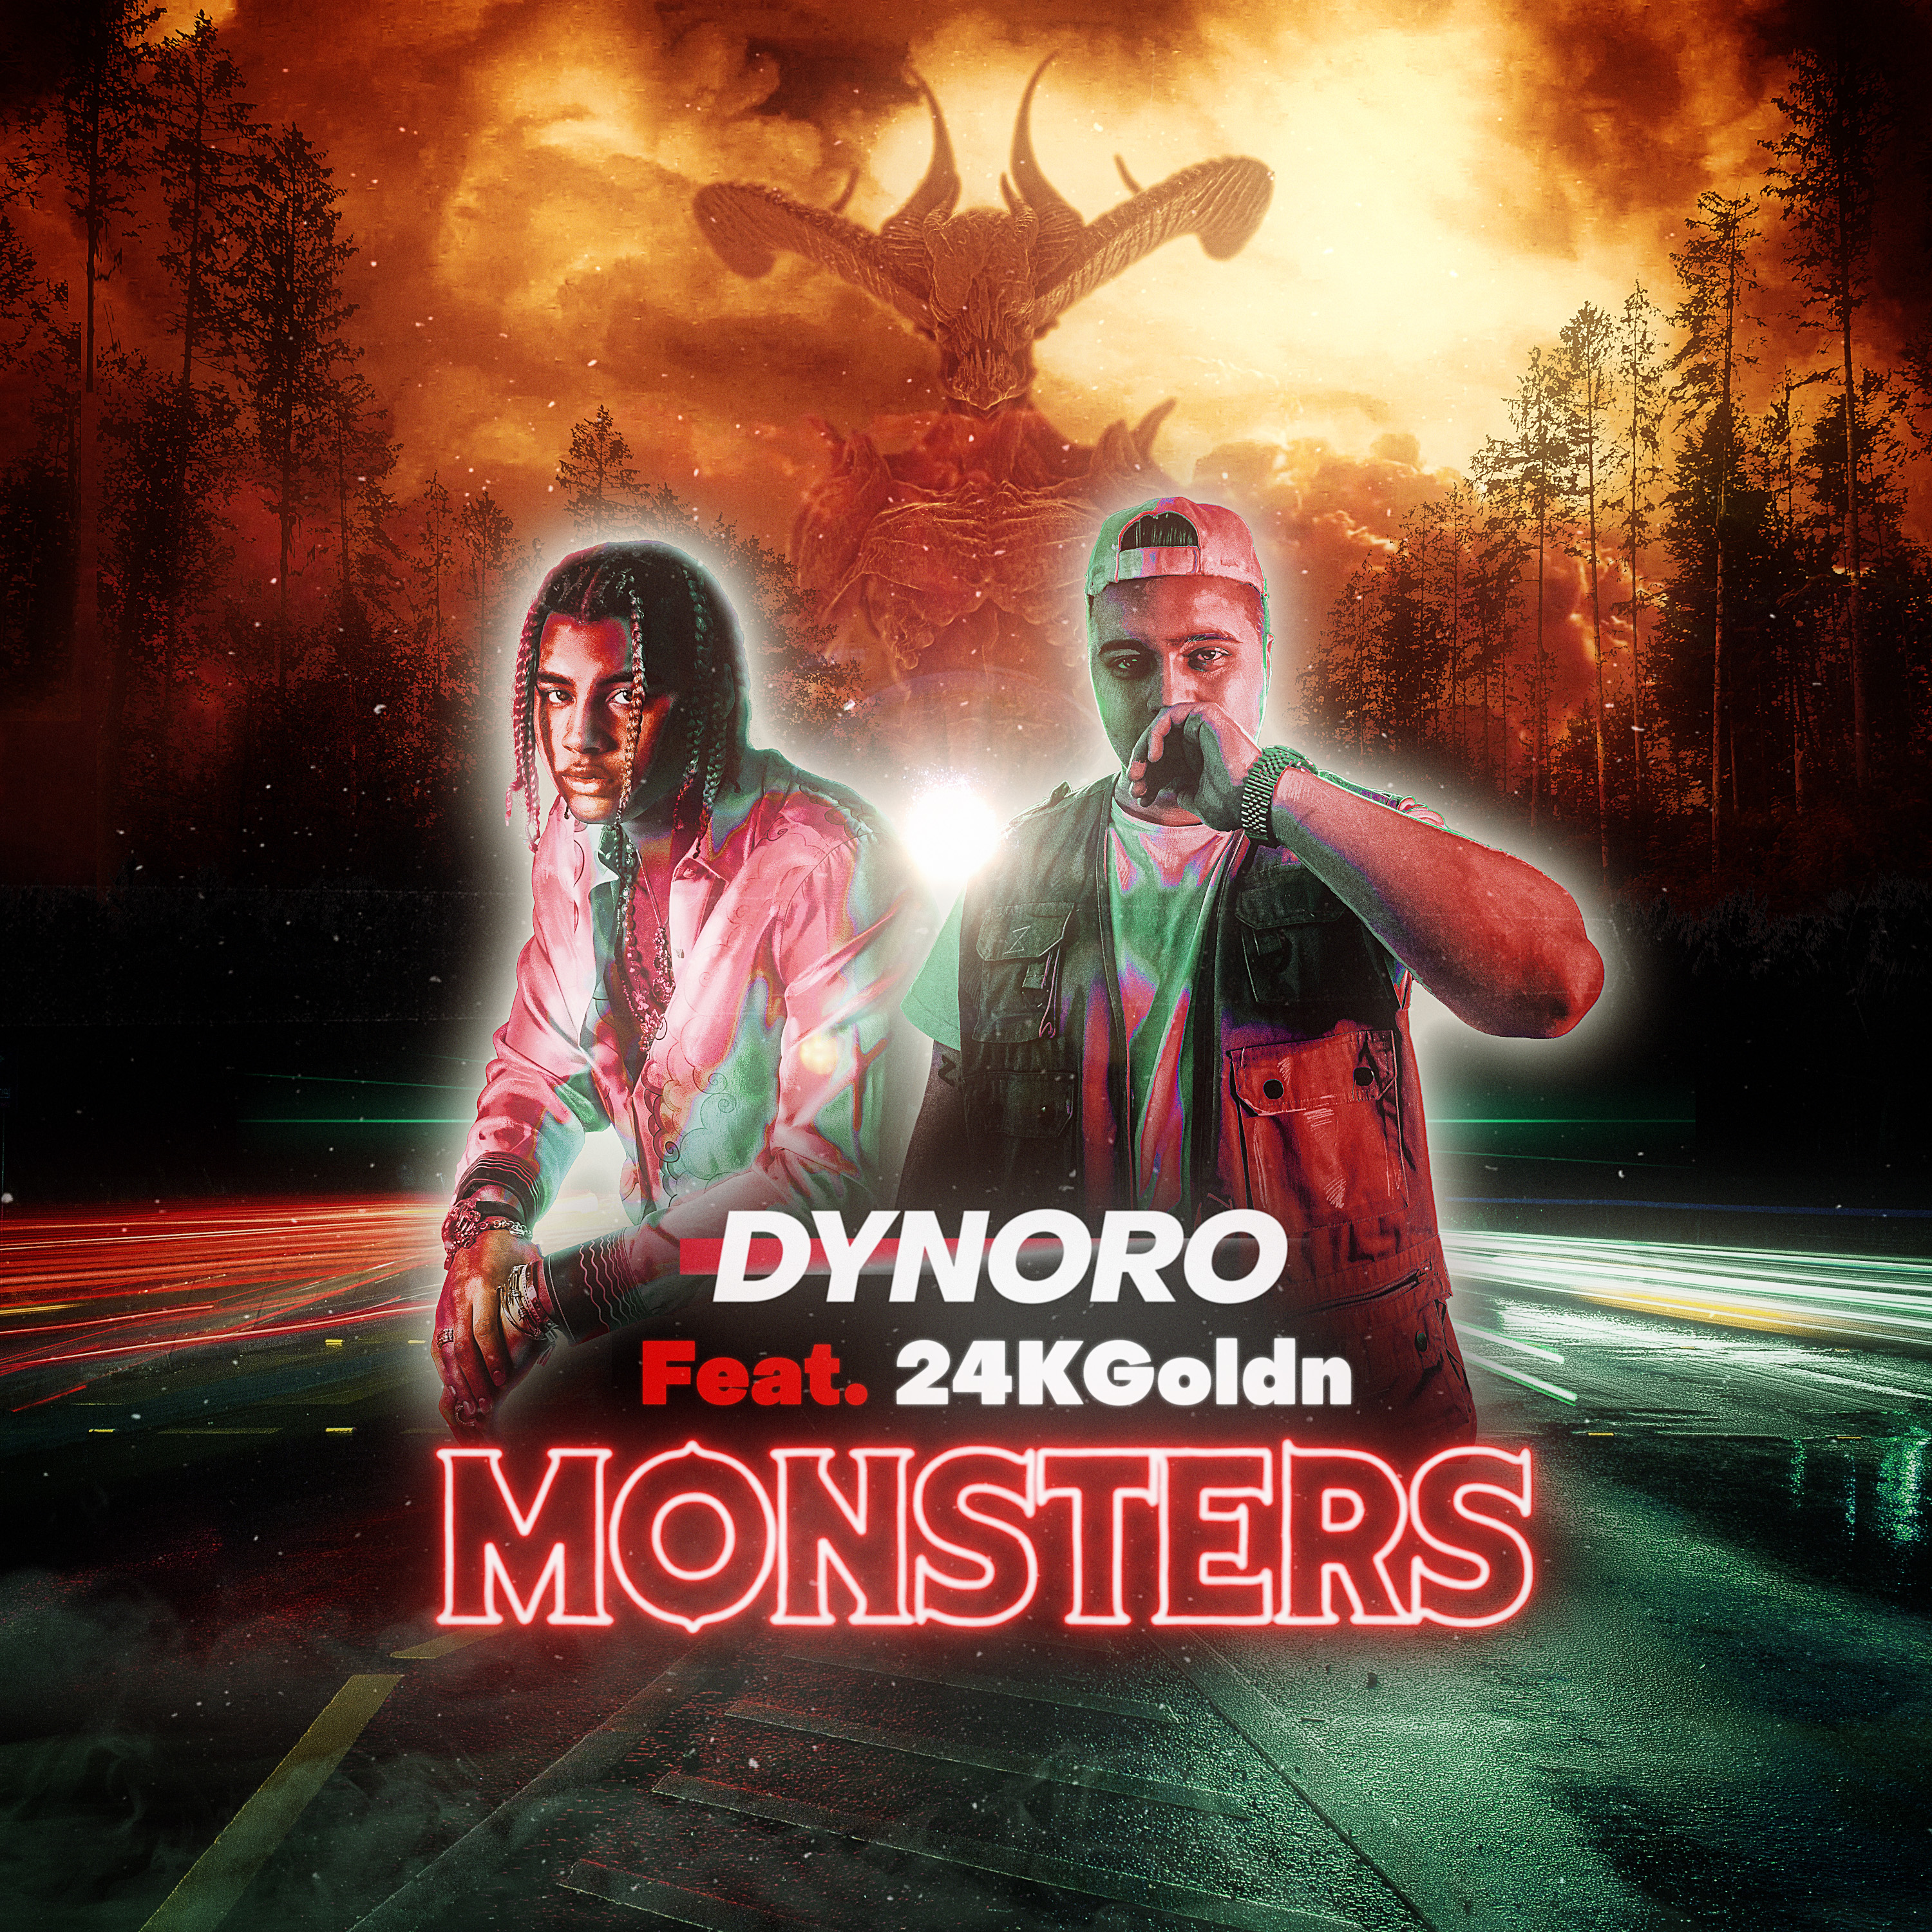 Dynoro featuring 24kGoldn – 'Monsters'.